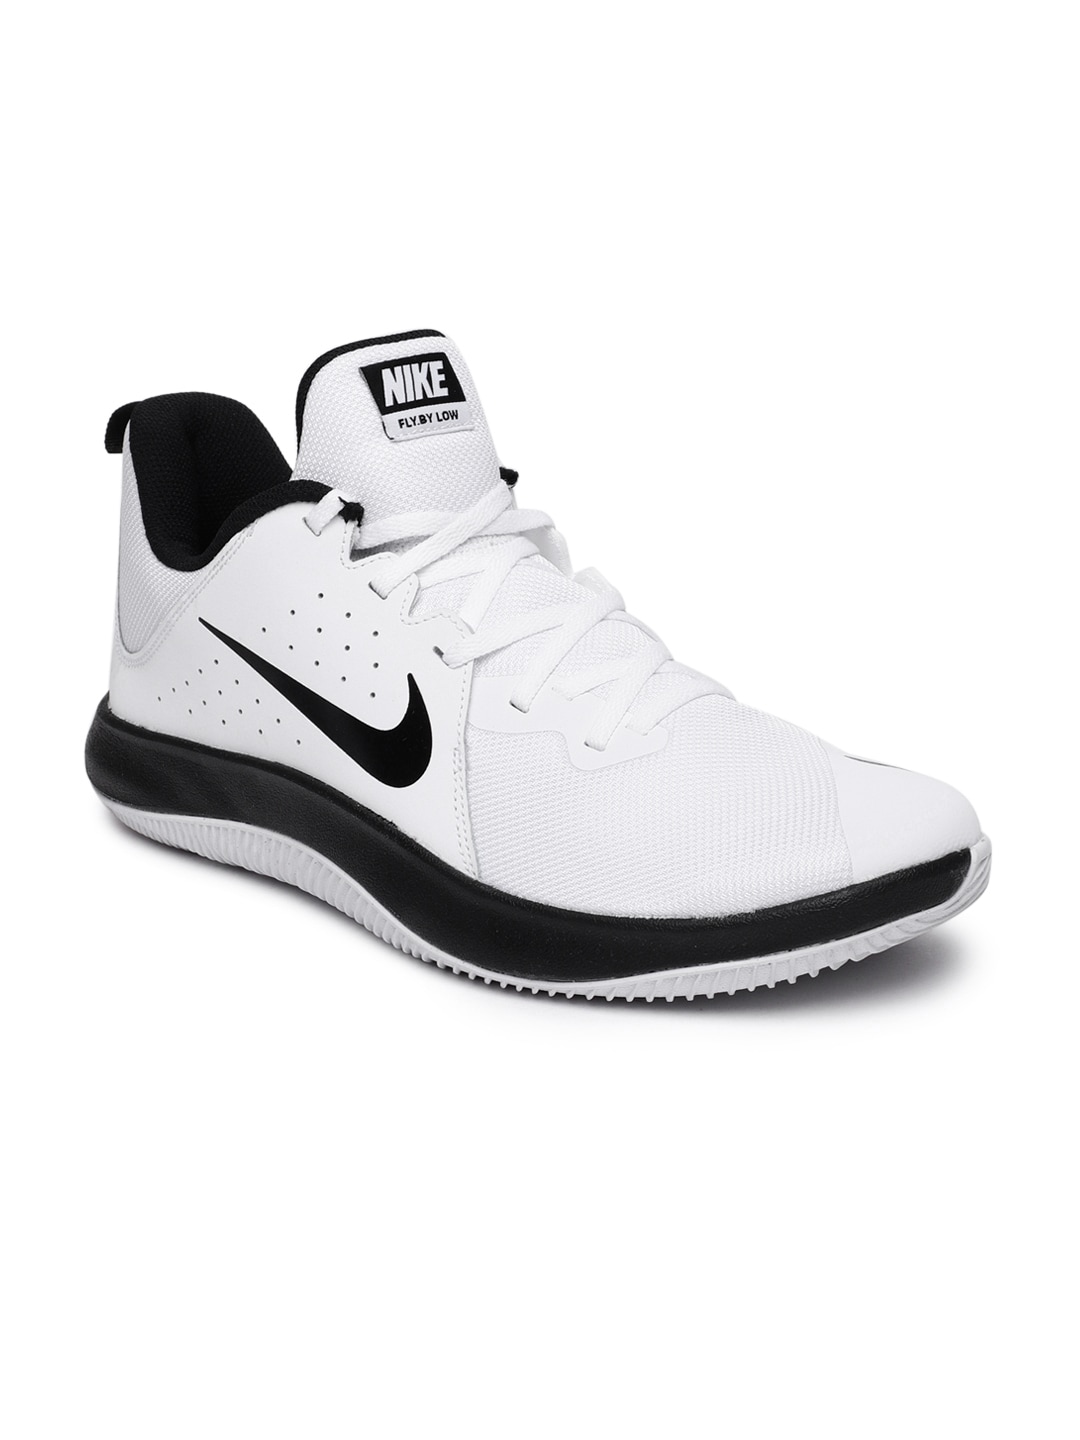 1bacb8a86cec Nike Shoes - Buy Nike Shoes for Men   Women Online